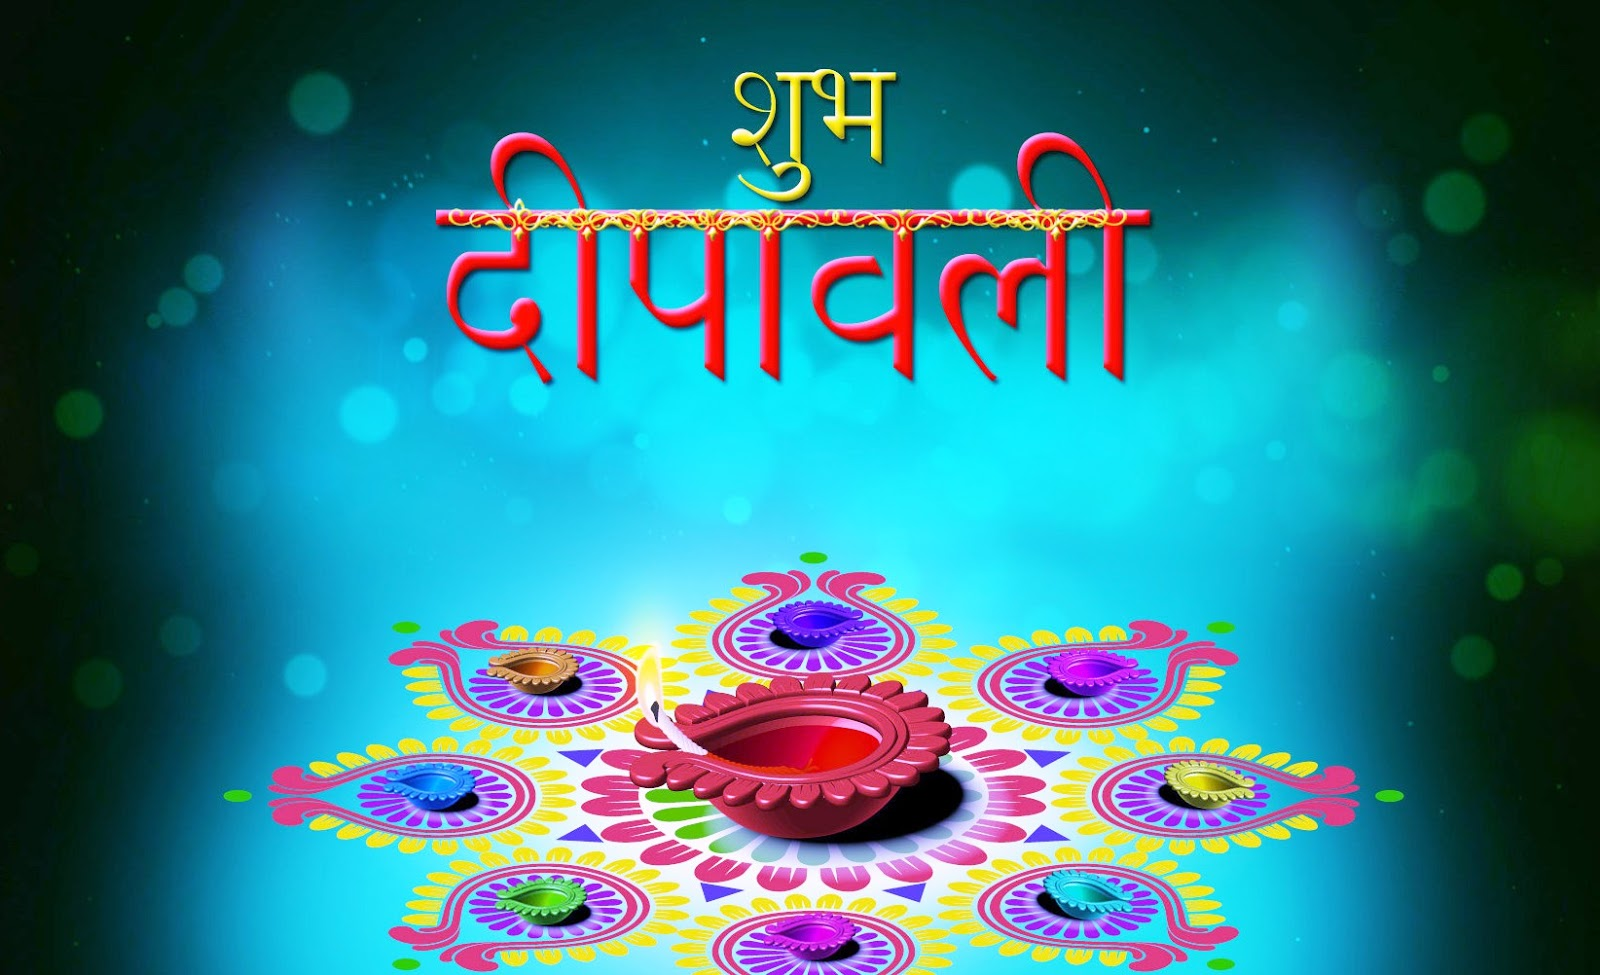 Happy Diwali 2017 Wishes Messages Quotes Status Greetings